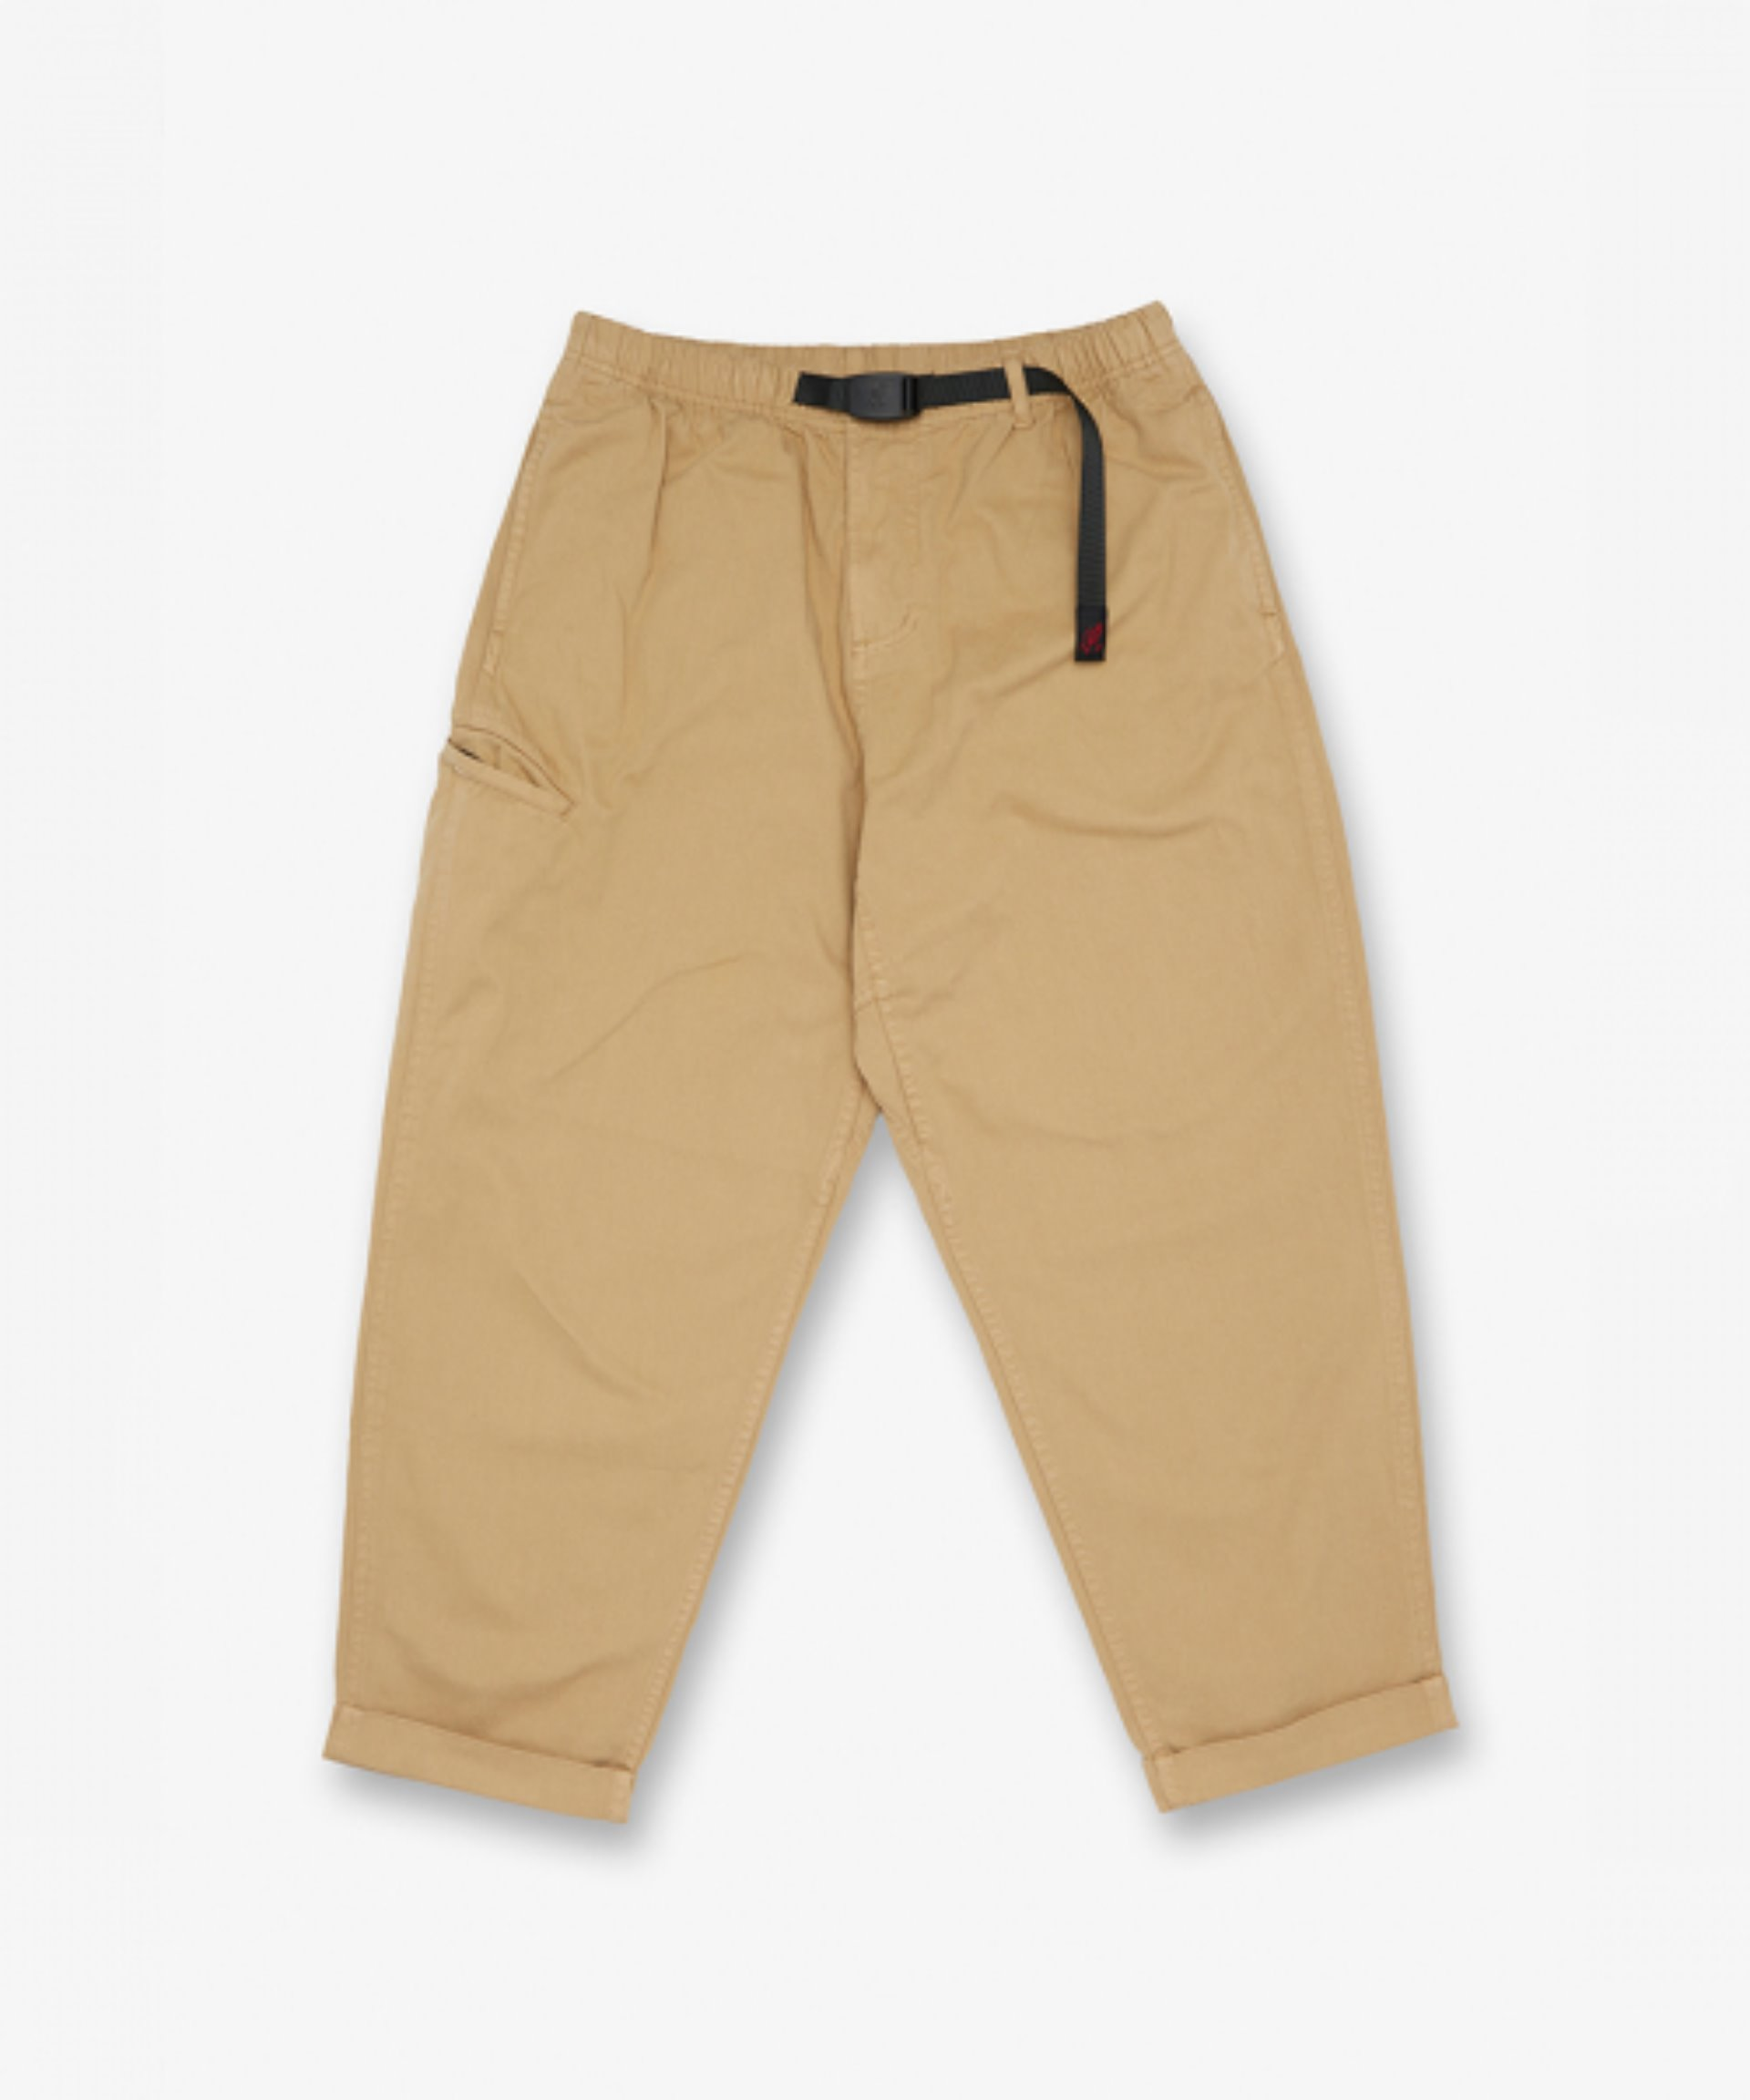 RESORT PANTS(CHINO)